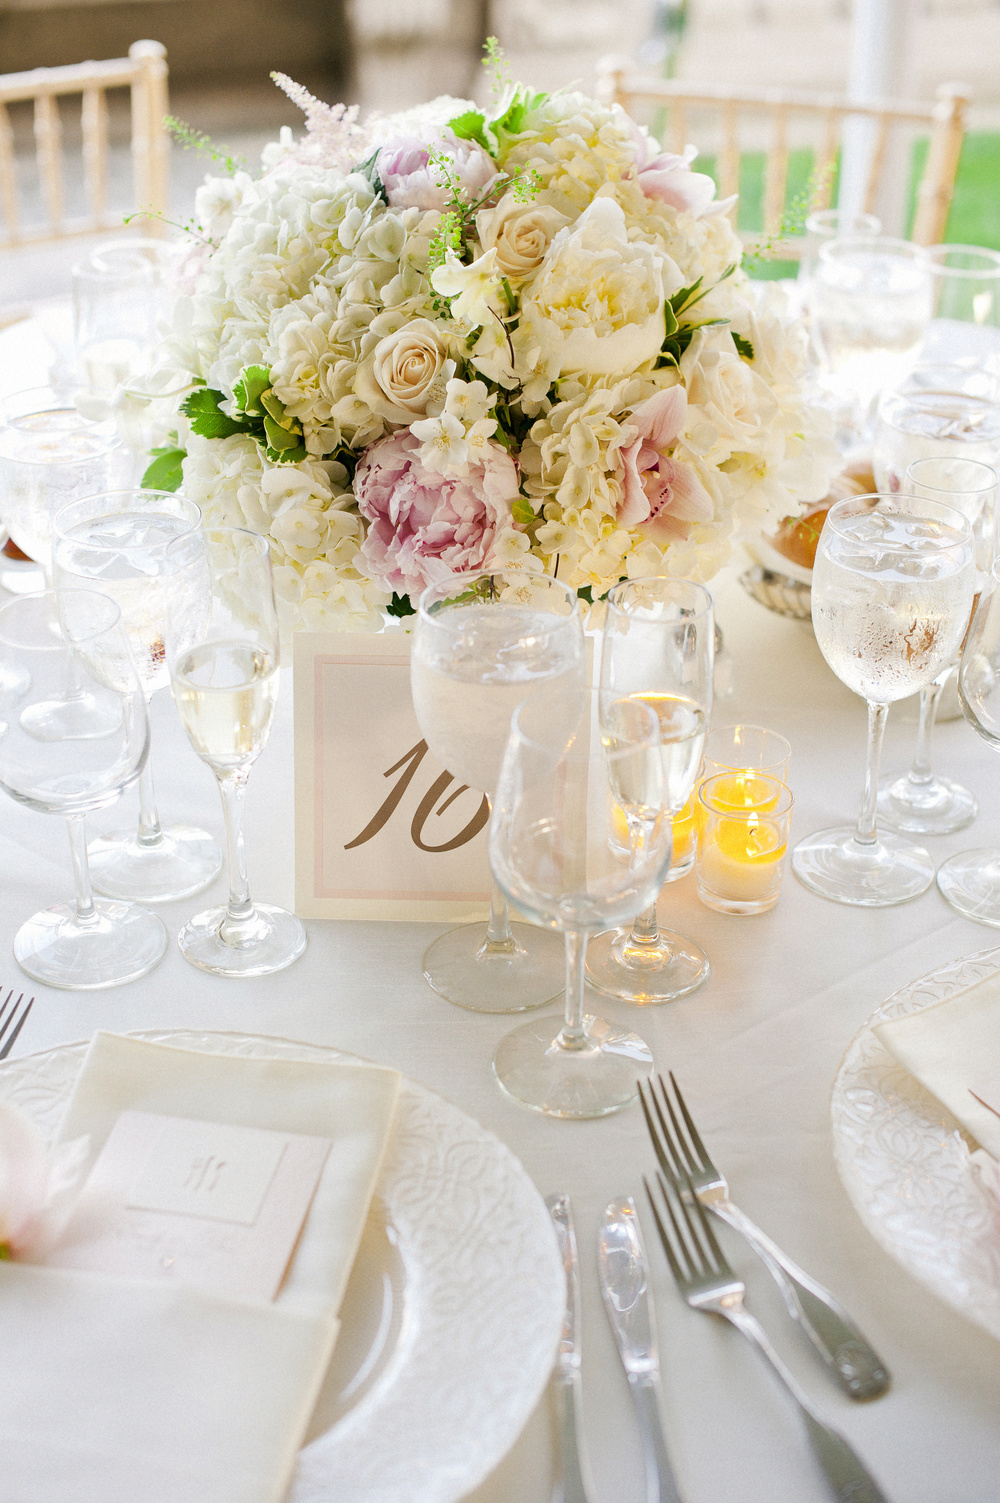 Blush Pink and Ivory make this sweet and softly romantic wedding look elegant and clean - just what the bride wanted. So see more from this wedding, please click  here .